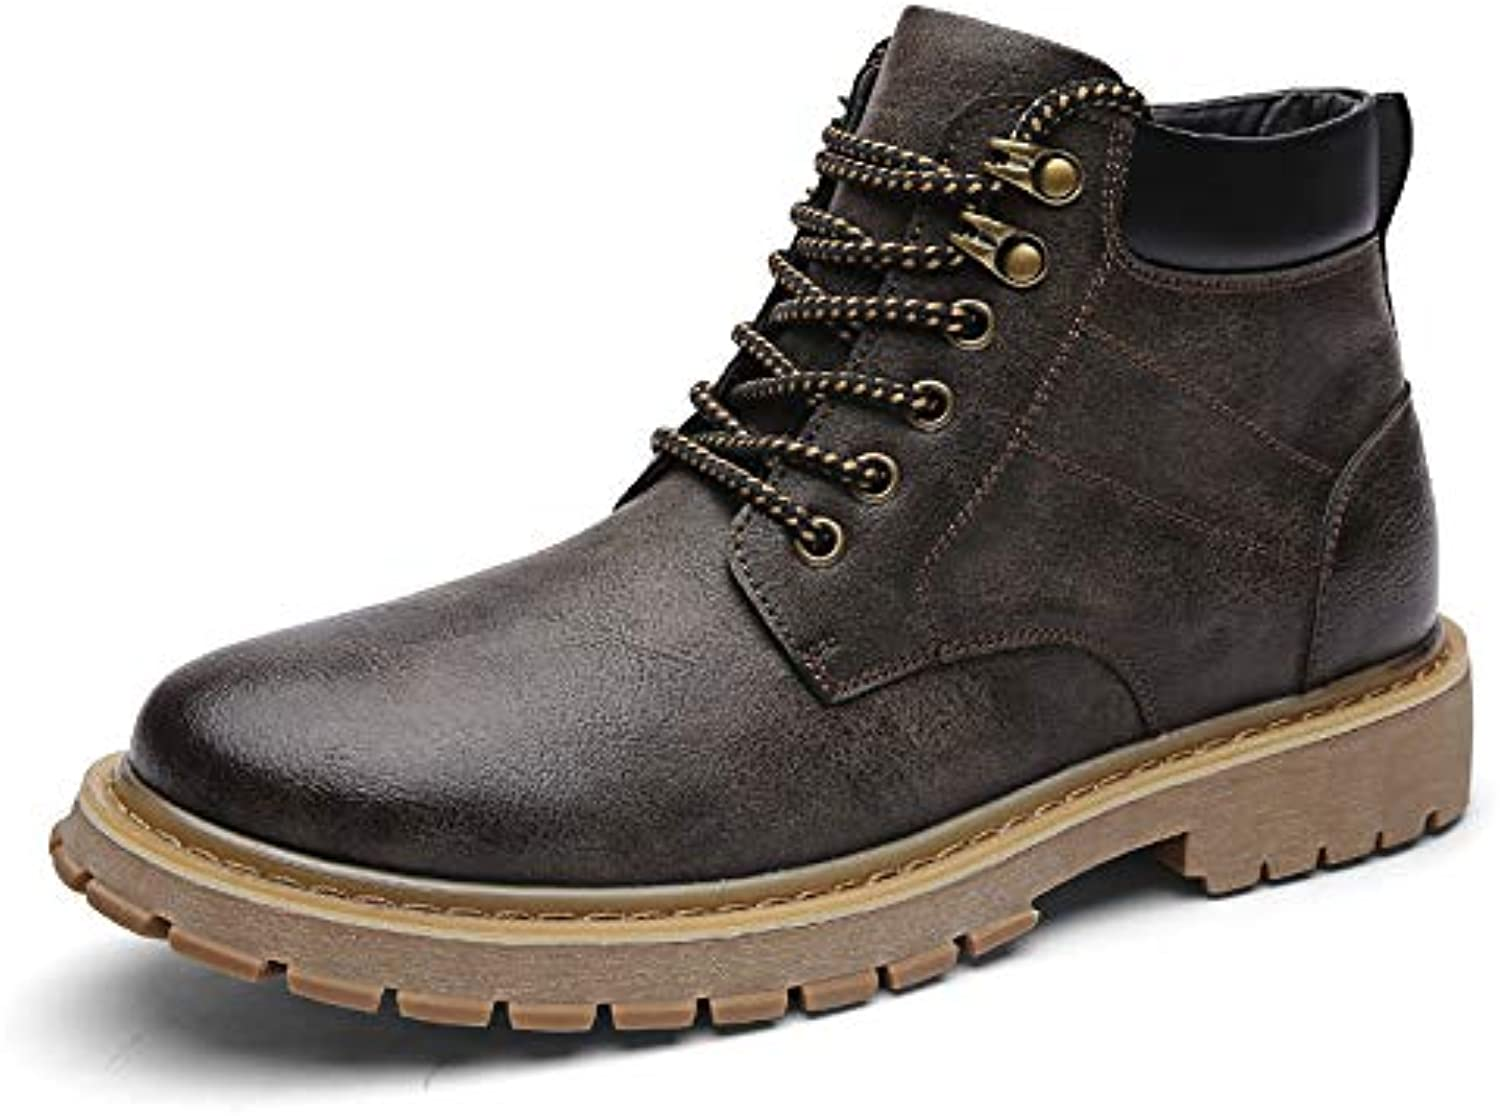 LOVDRAM Boots Men's Martin Boots Men'S Pu High Men'S shoes Tooling shoes Military Boots Casual shoes Wild Outdoor Desert Boots